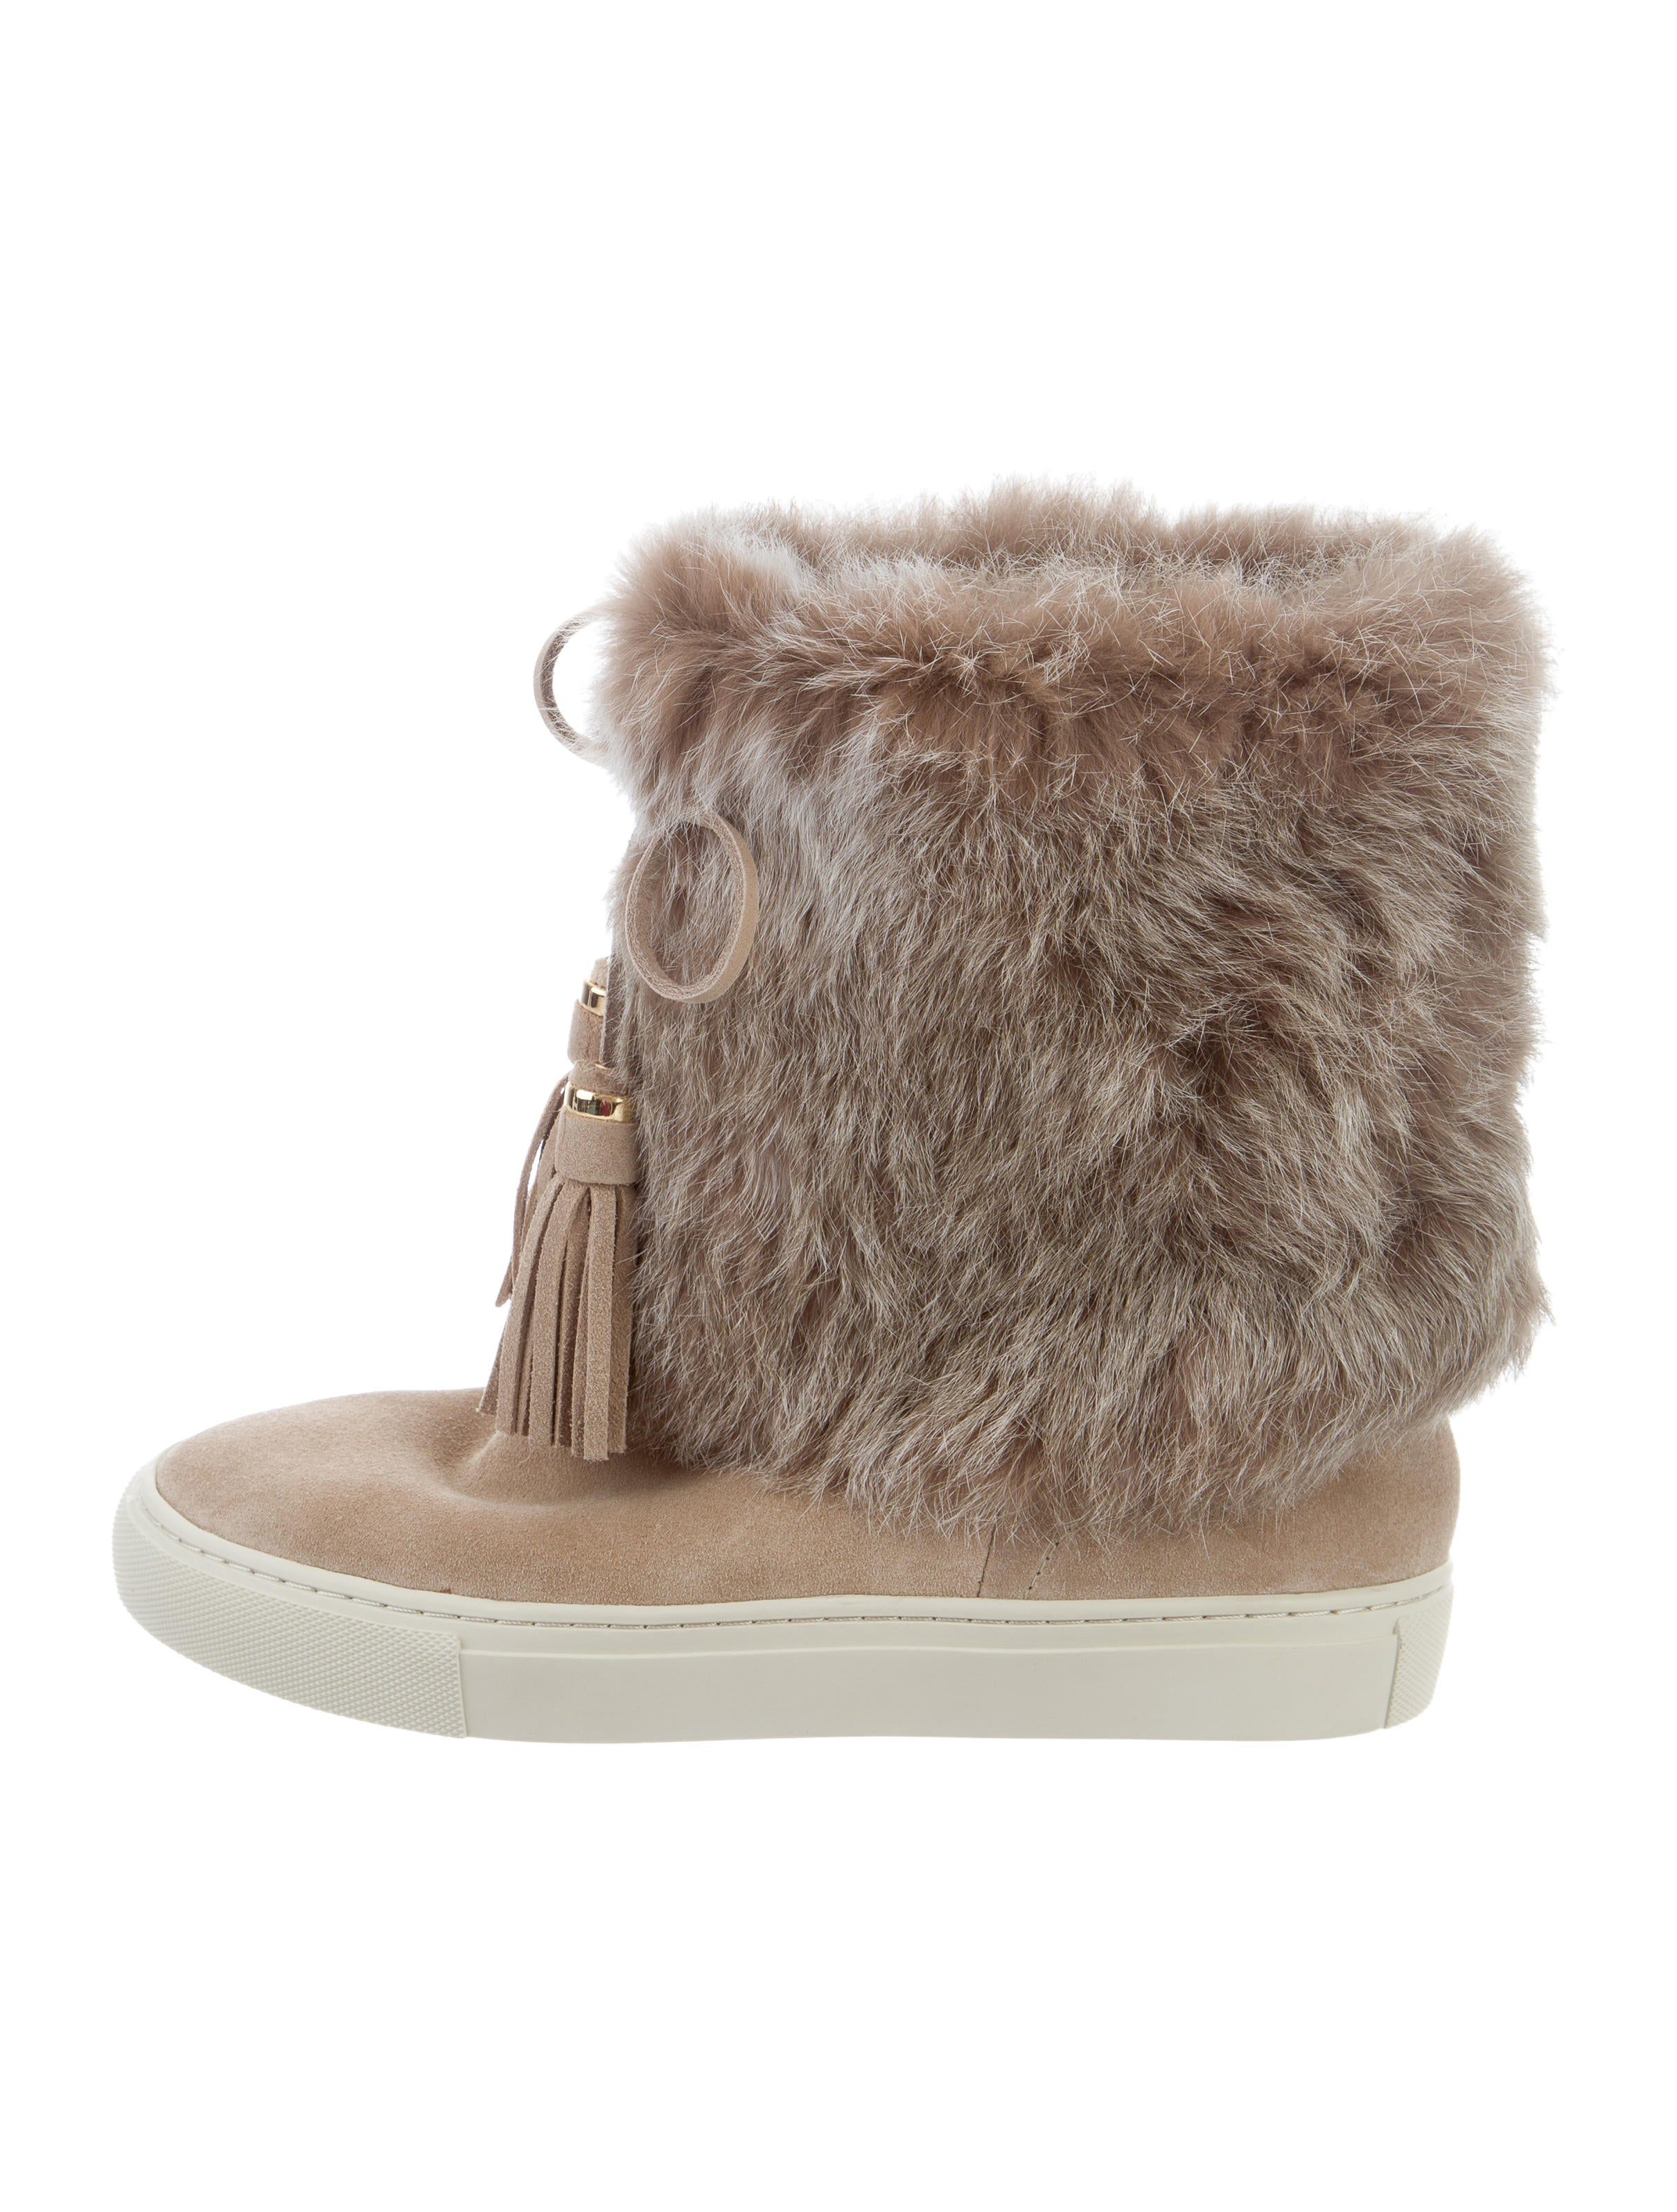 001d6b4f5cc8 Tory Burch Anjelica Fur-Trimmed Sneaker Boots w  Tags - Shoes ...